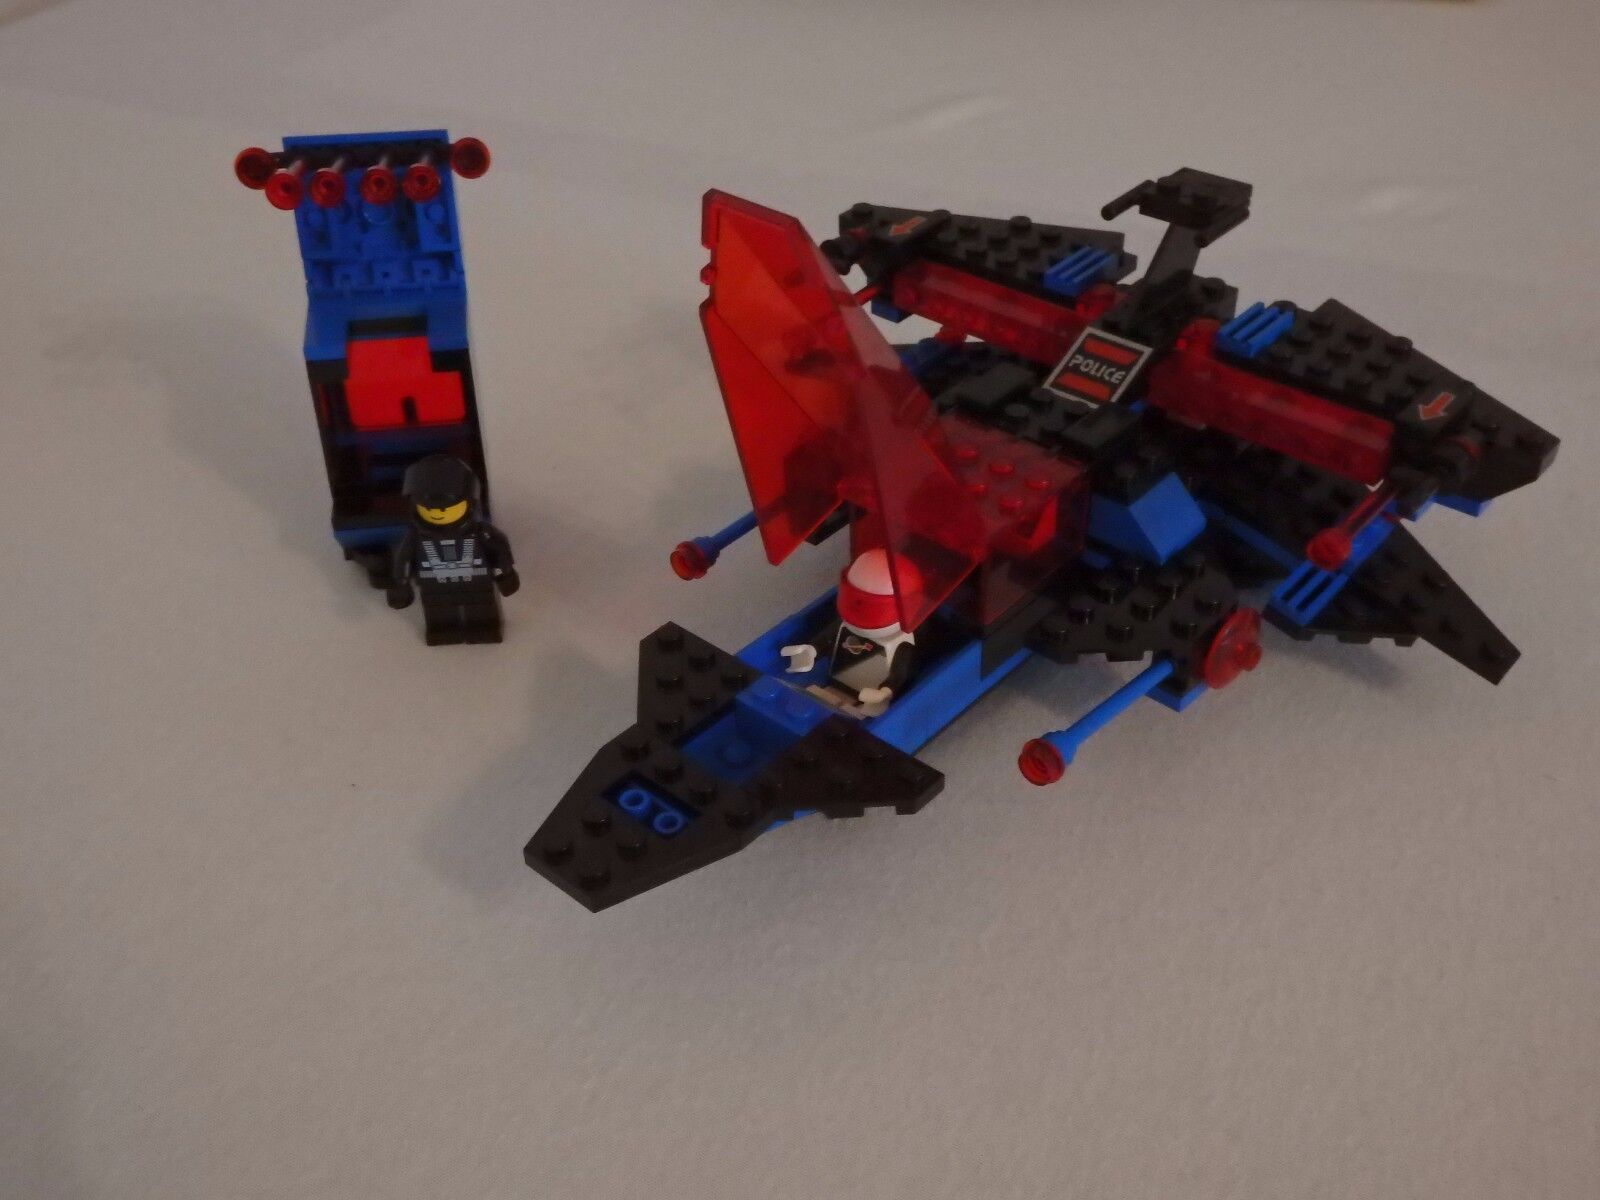 Lego 6781 SP-Striker Weltraum Space Police Star Wars